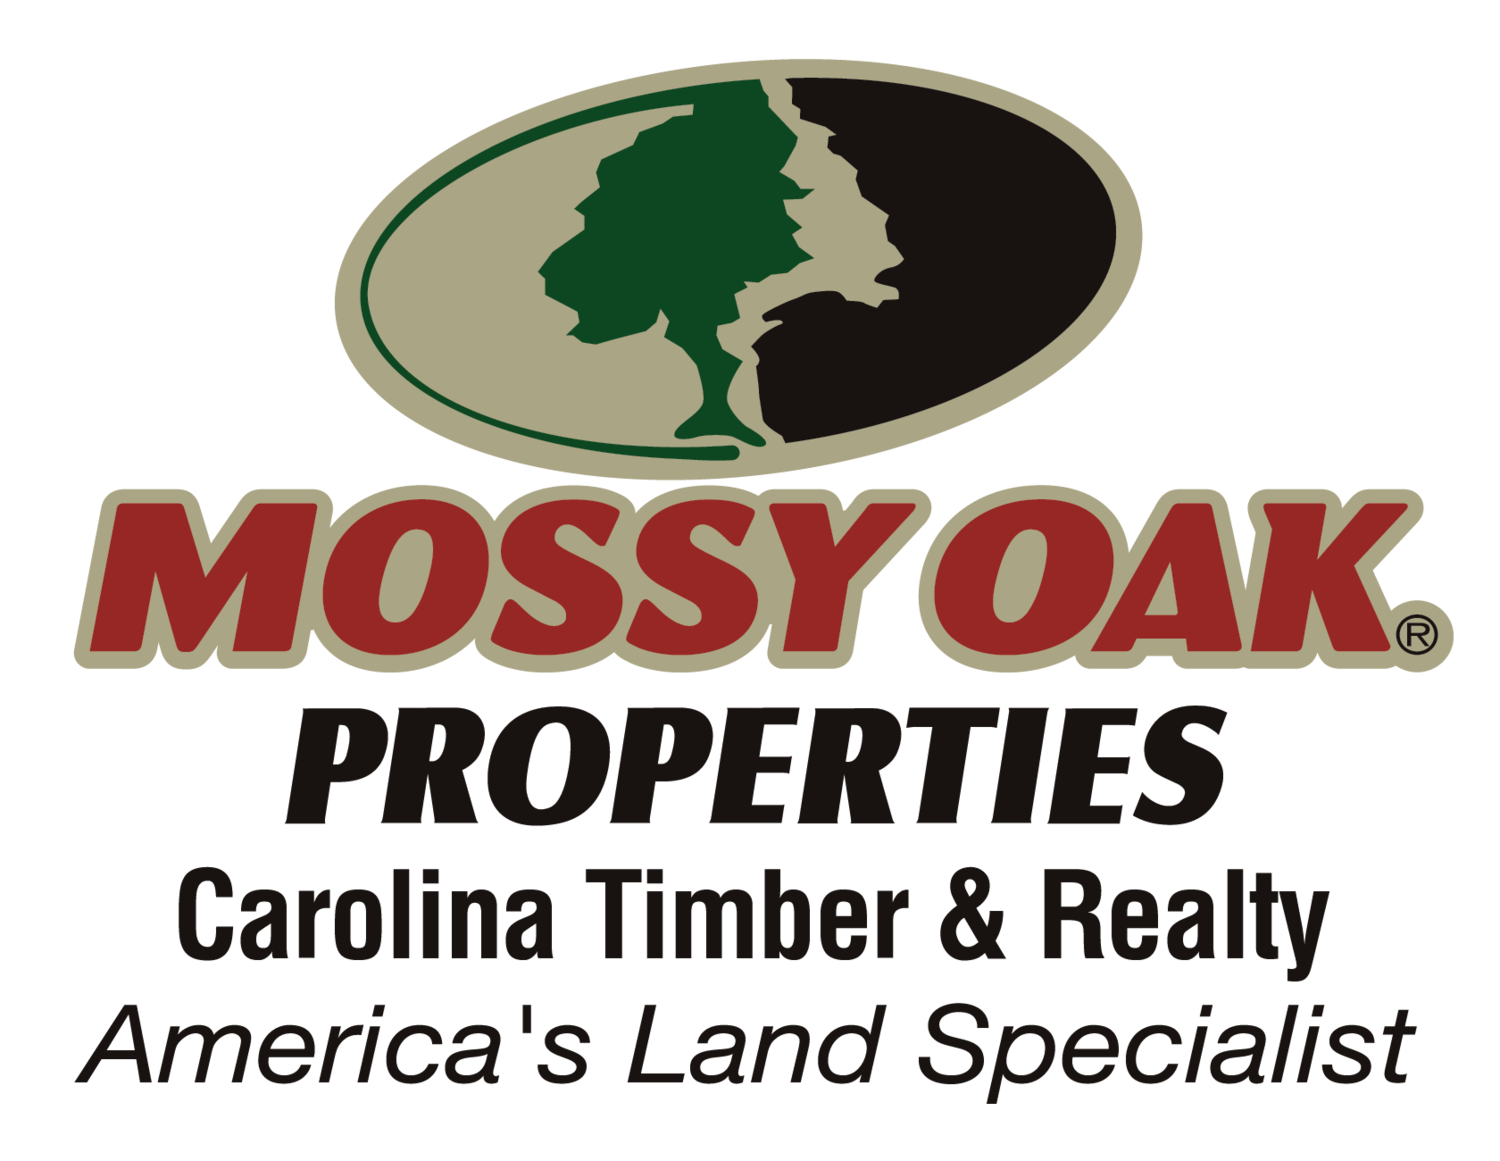 Mossy Oak Properties Carolina Timber & Realty